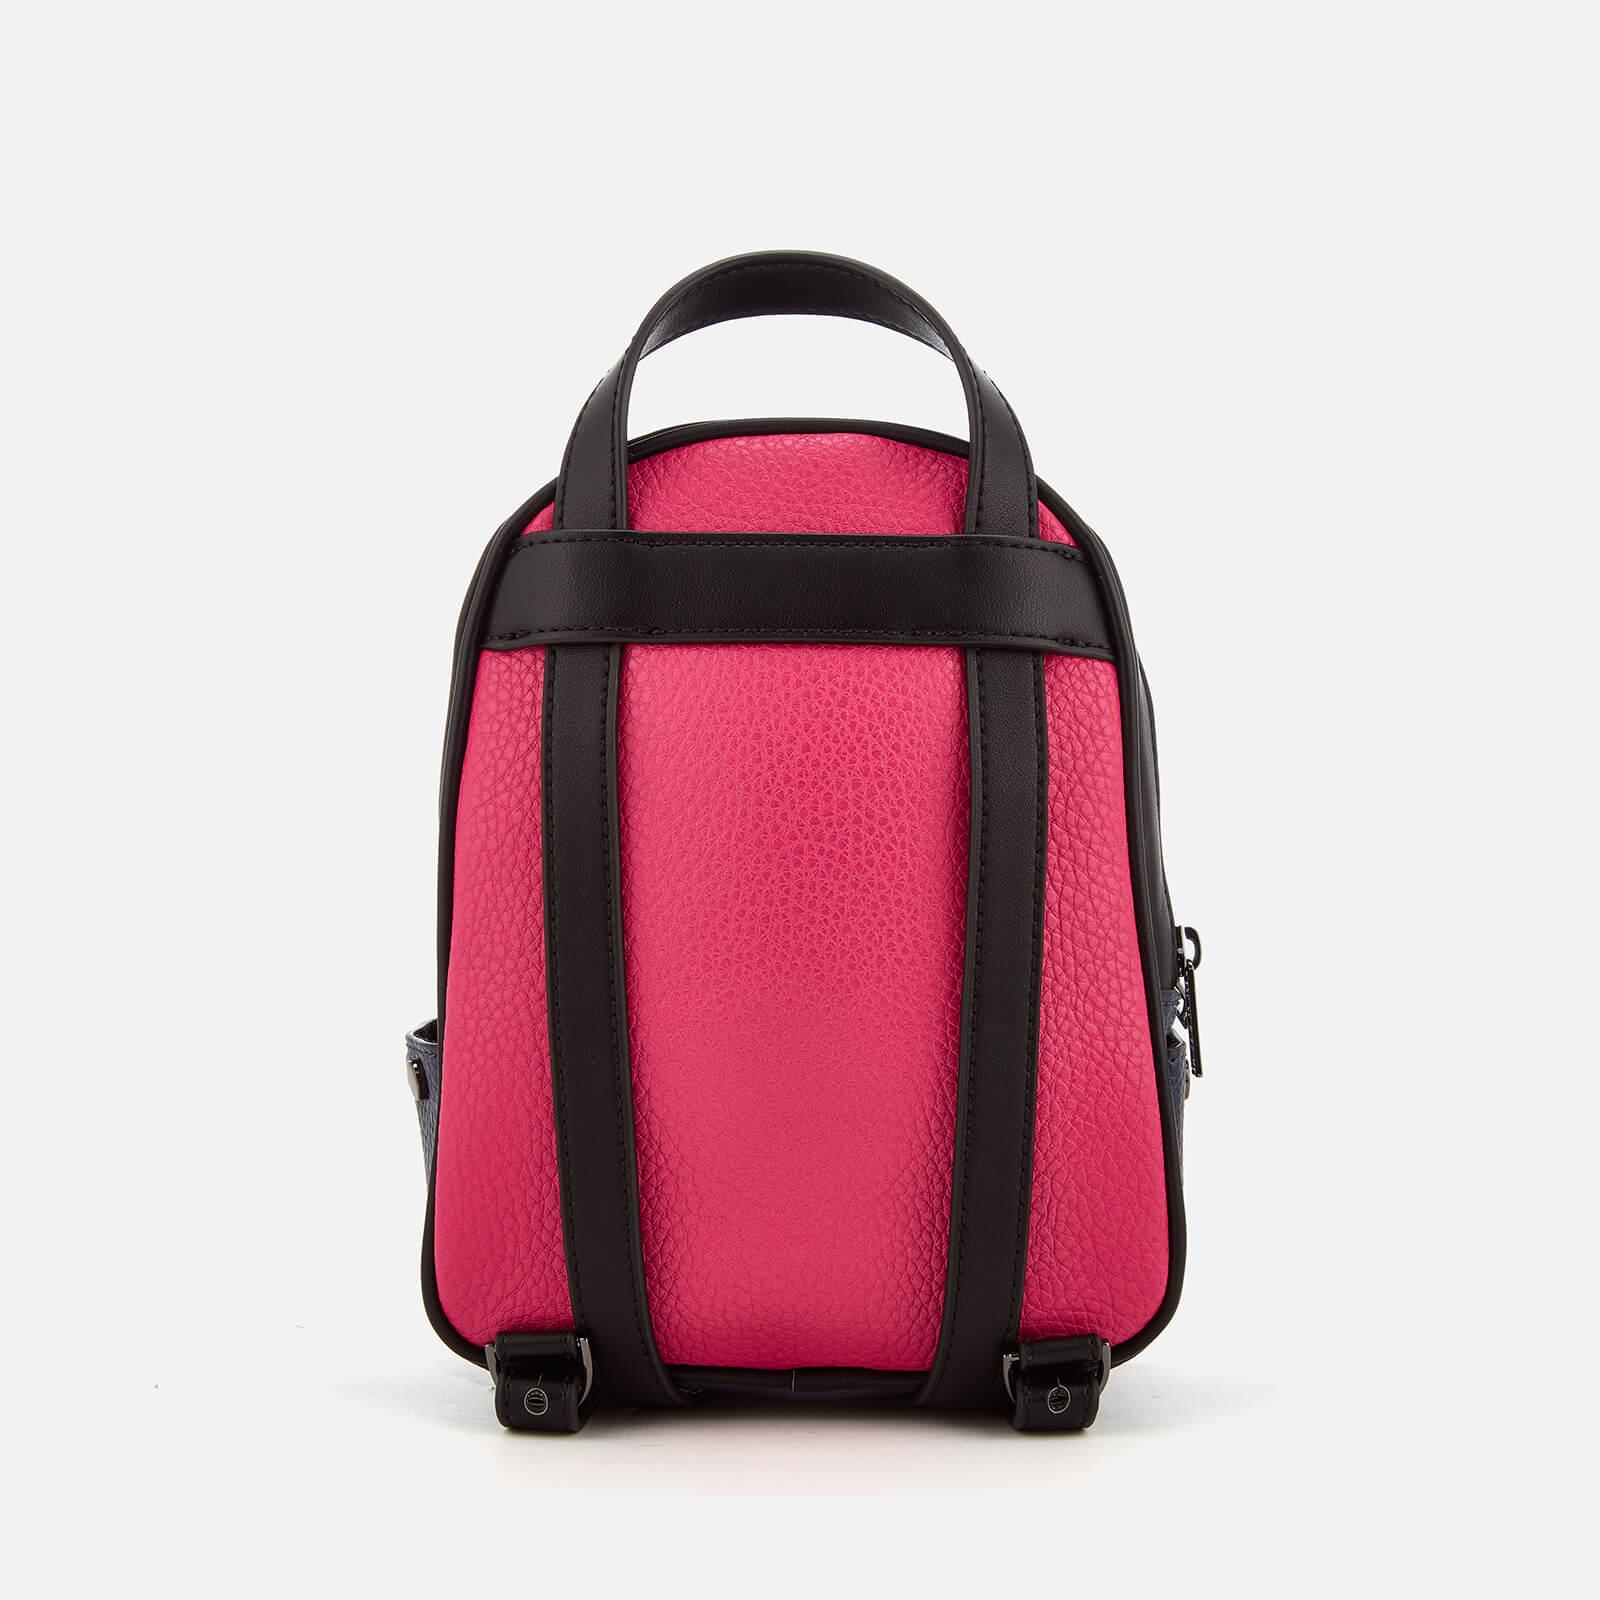 Juicy by Juicy Couture Zippy Holdall - Black/pink Juicy Couture eWpEanuDo1